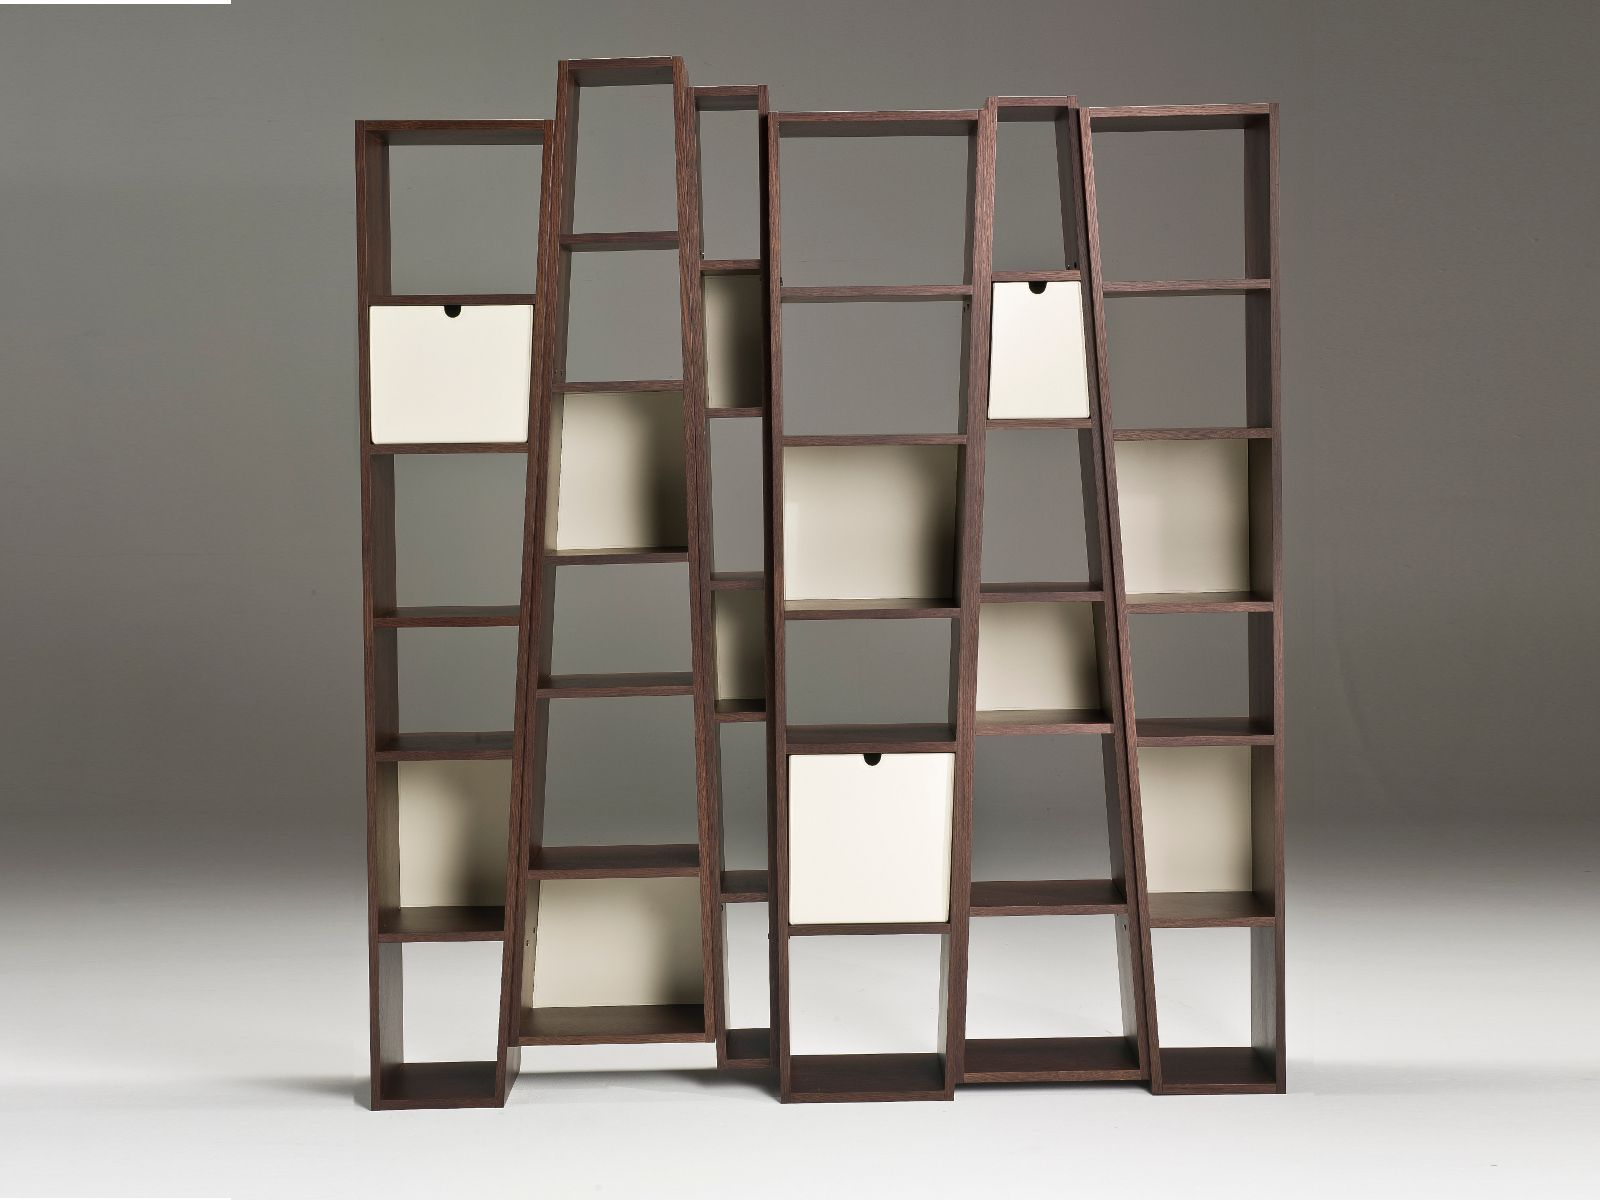 attachment gallery teak photos storages view sided furniture of double accent bookcase previous bookcases showing photo